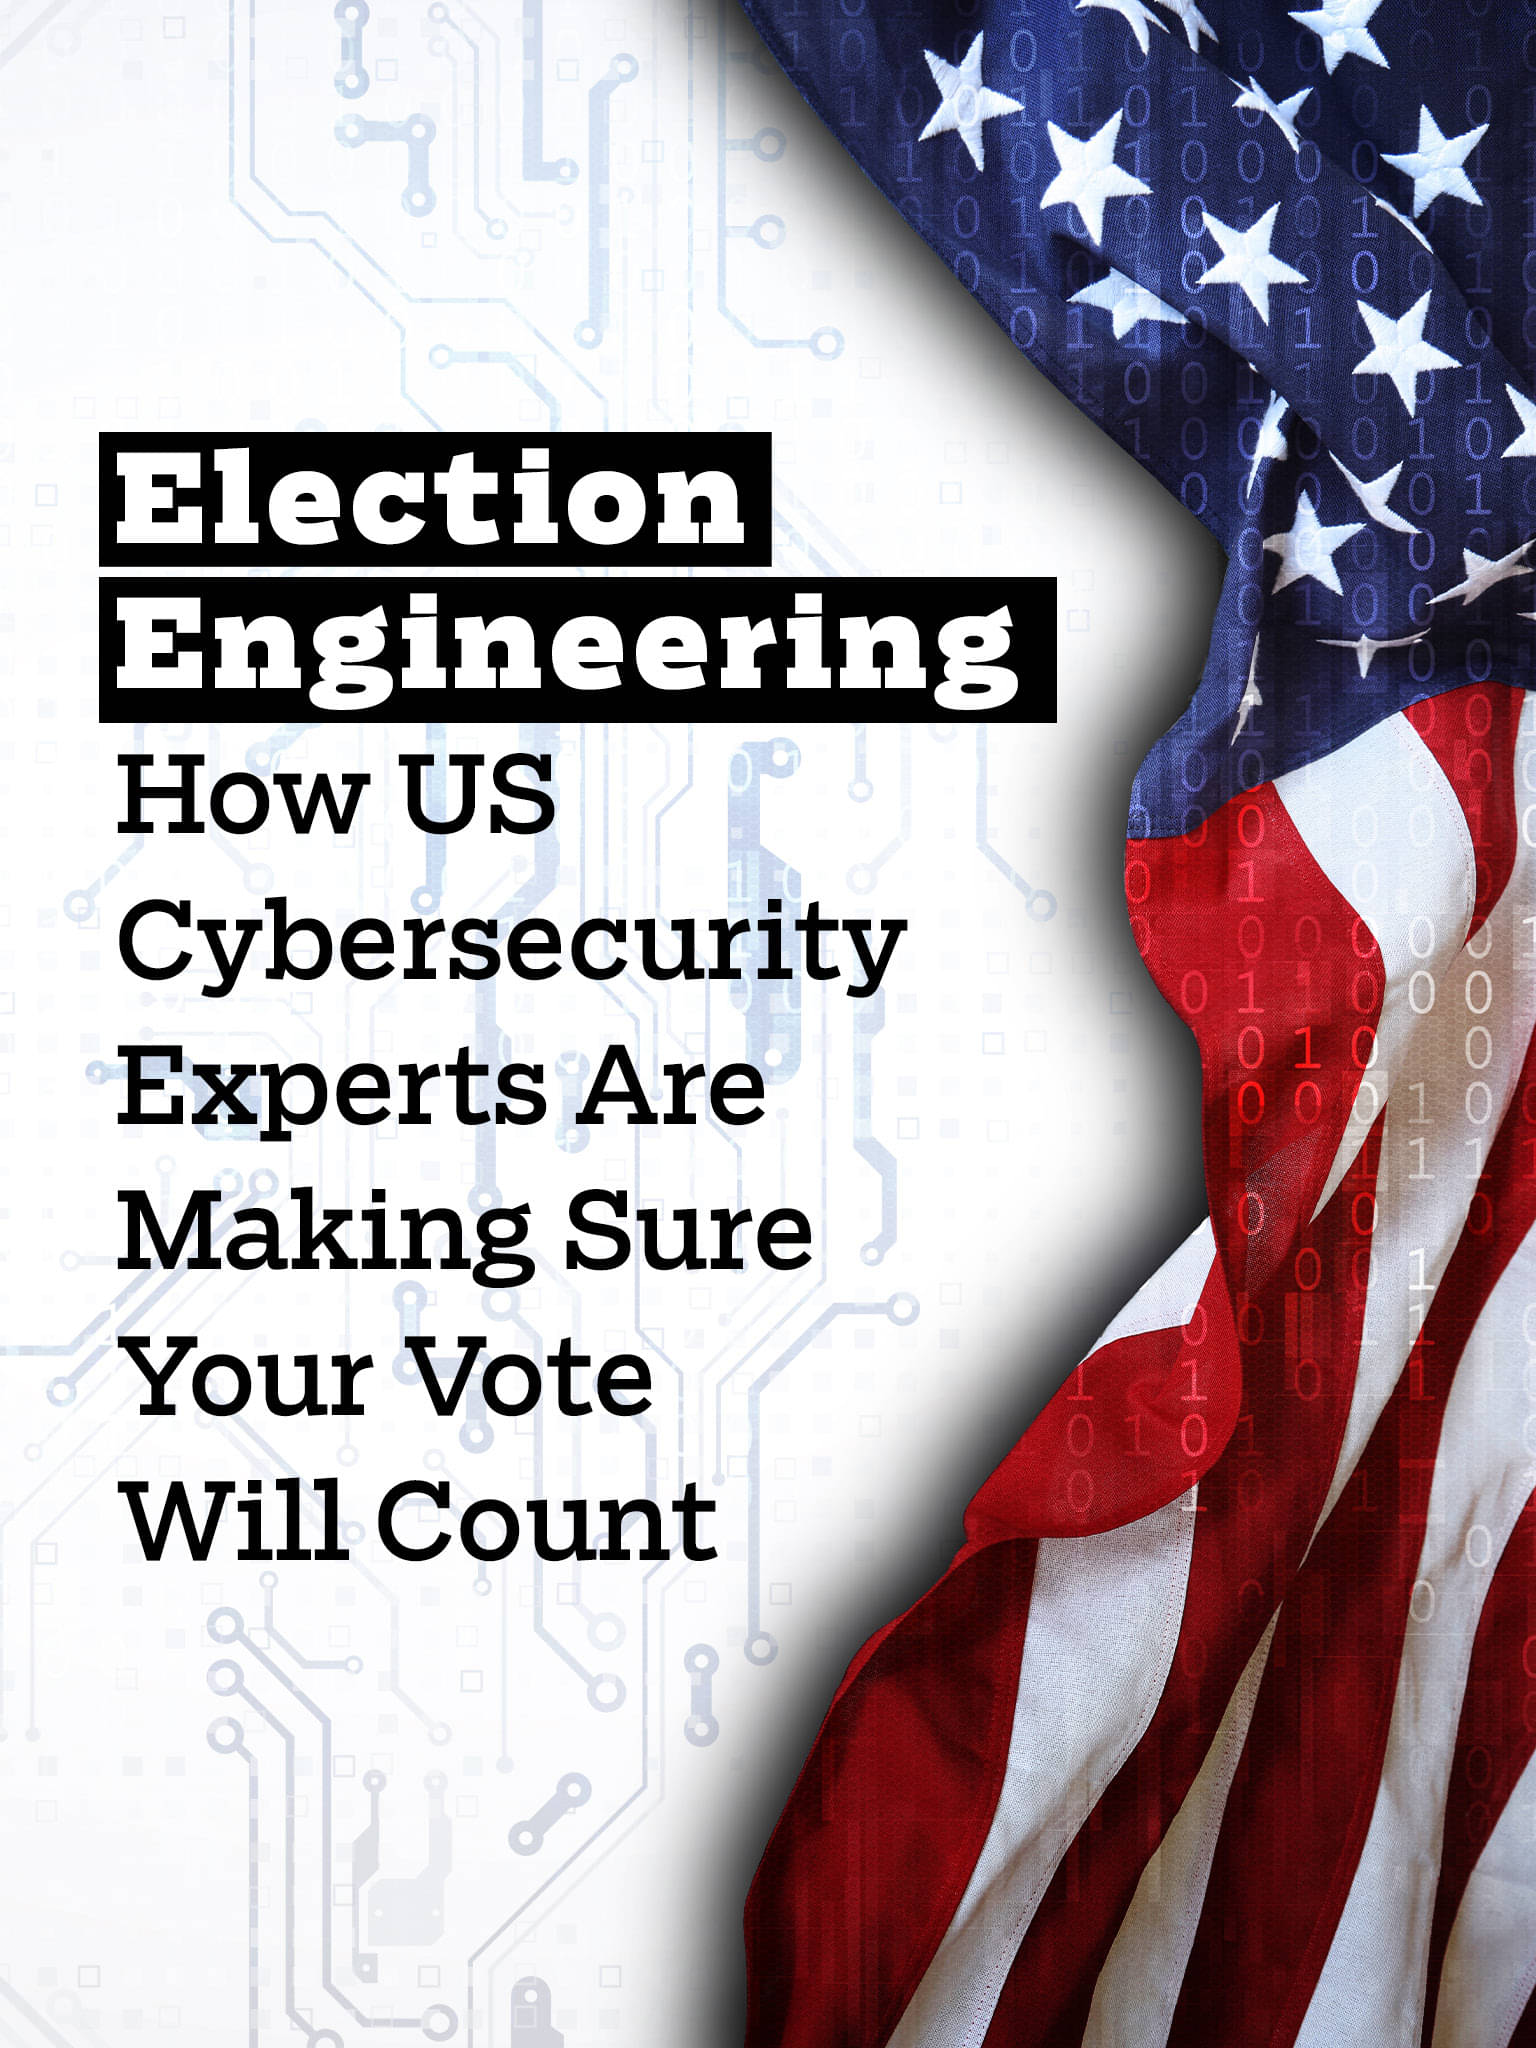 Election Engineering: How US Cybersecurity Experts Are Making Sure Your Vote Will Count